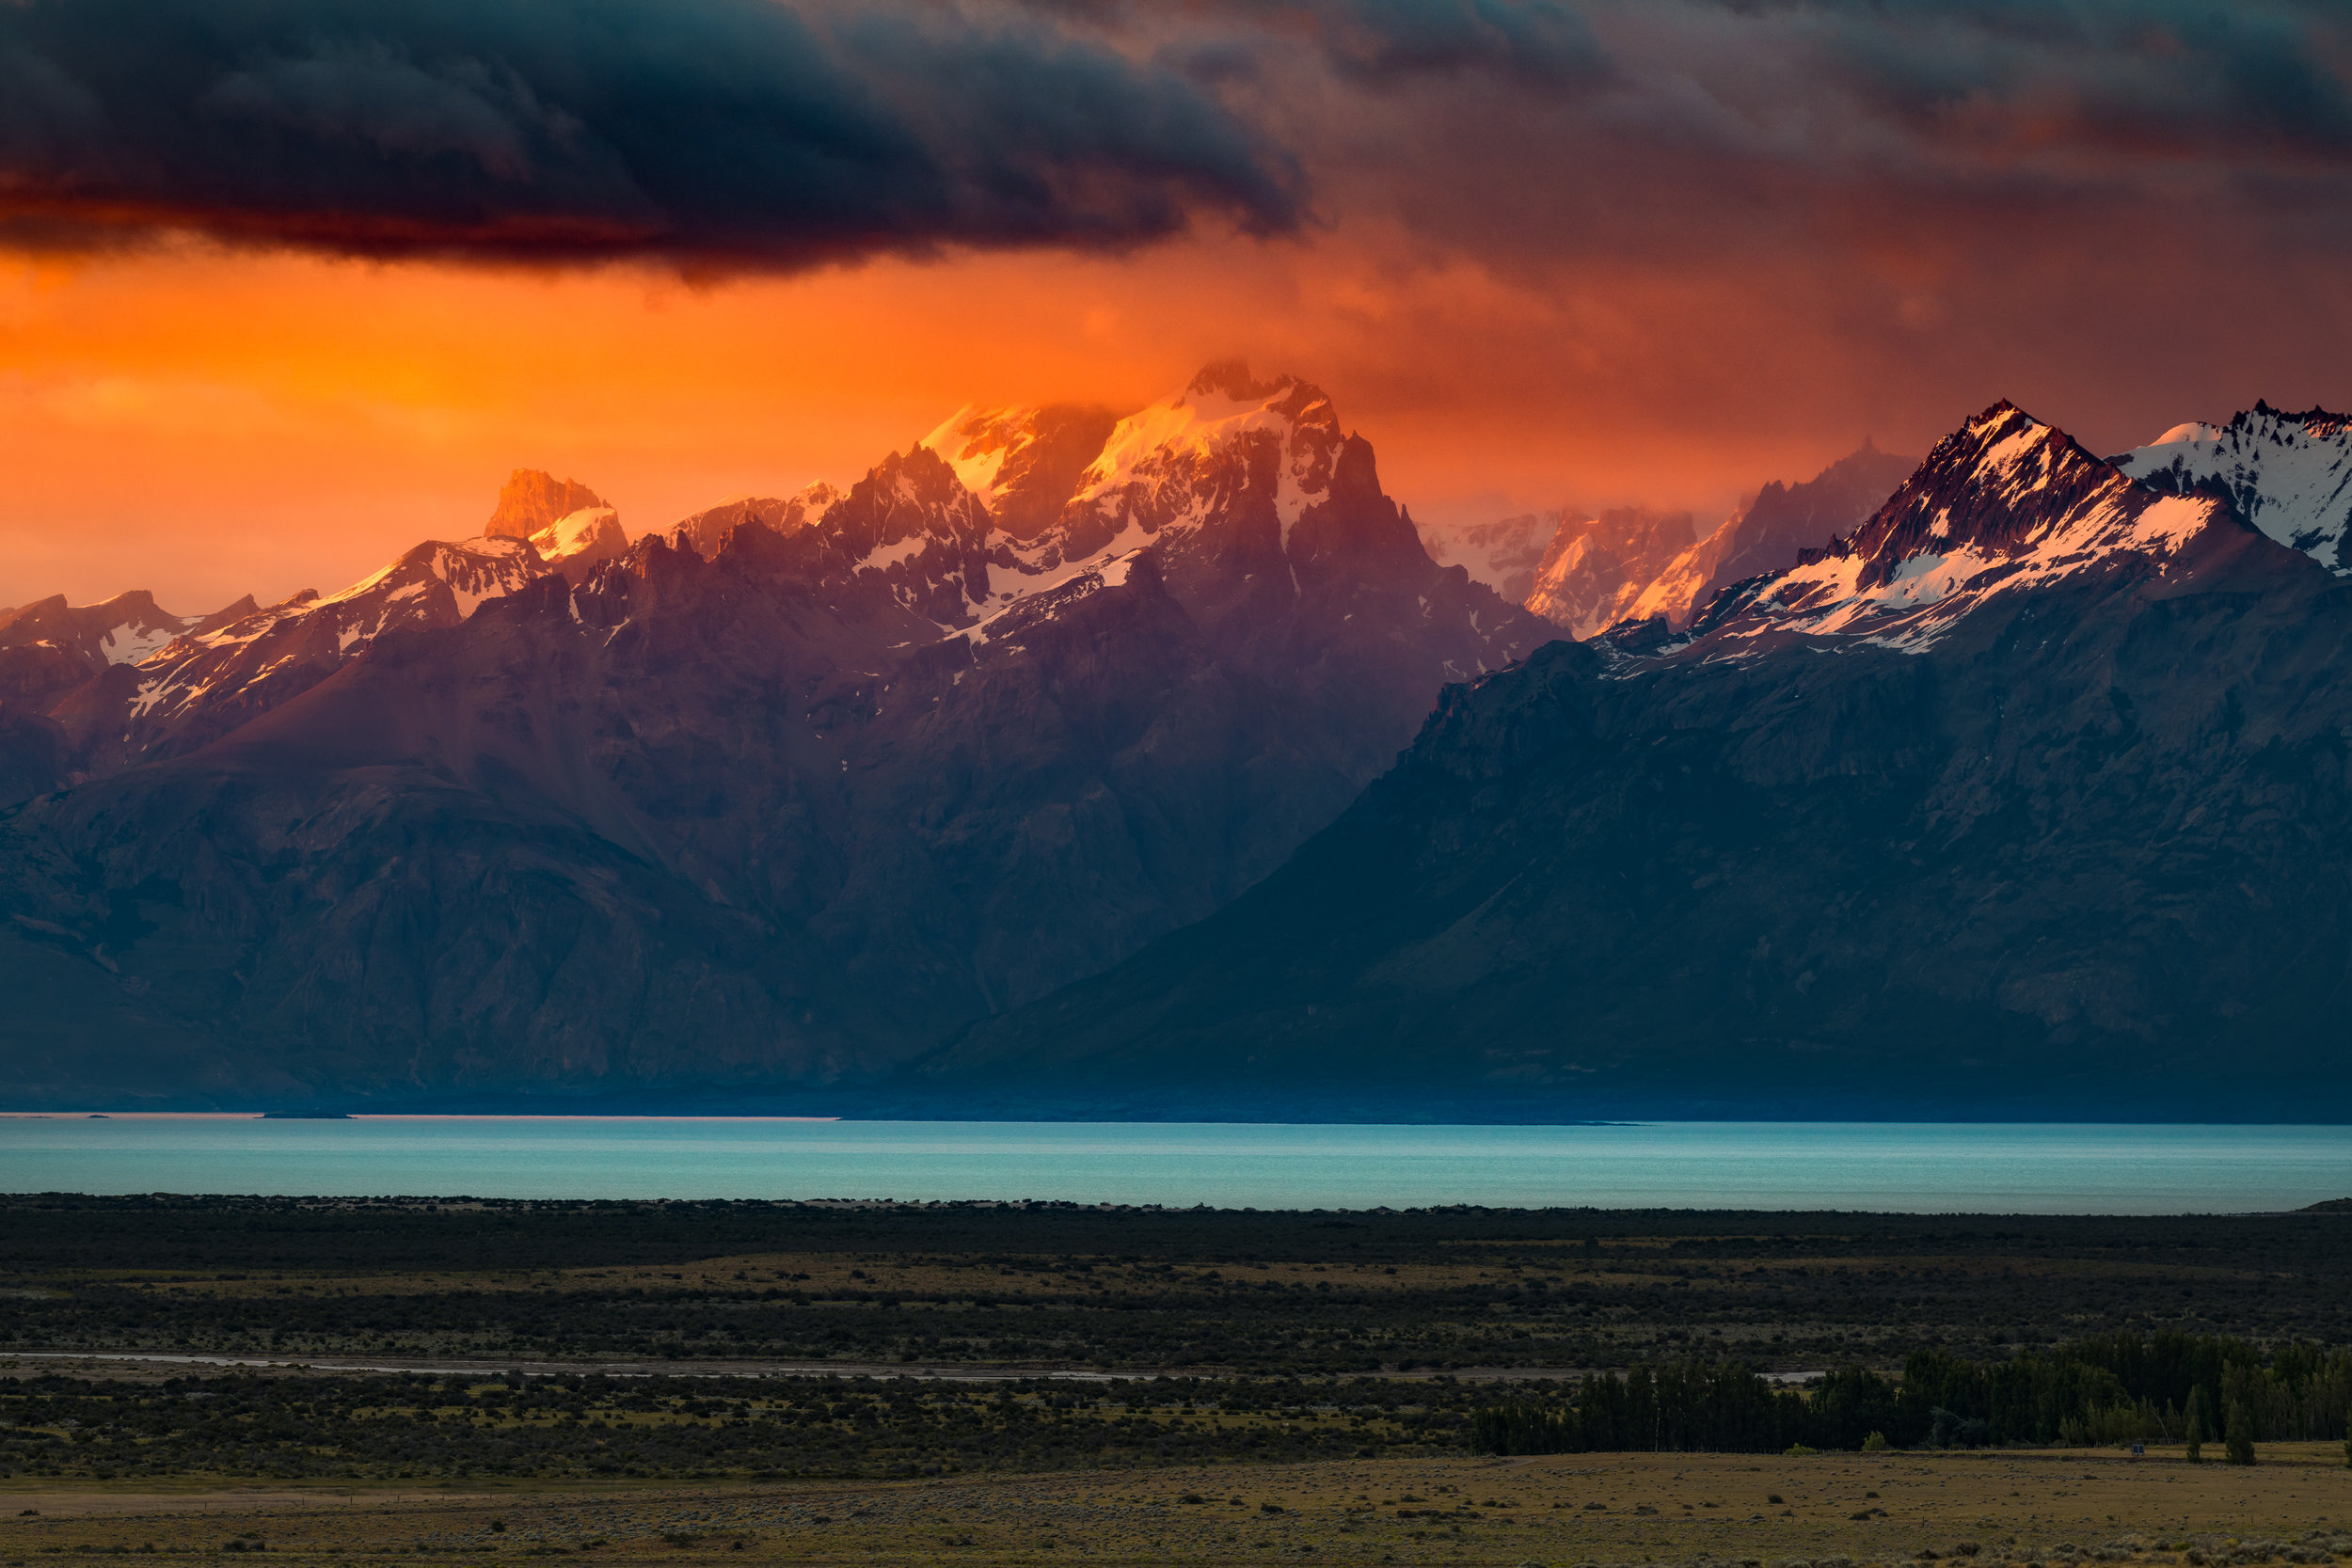 photo_workshop_patagonia-14.jpg